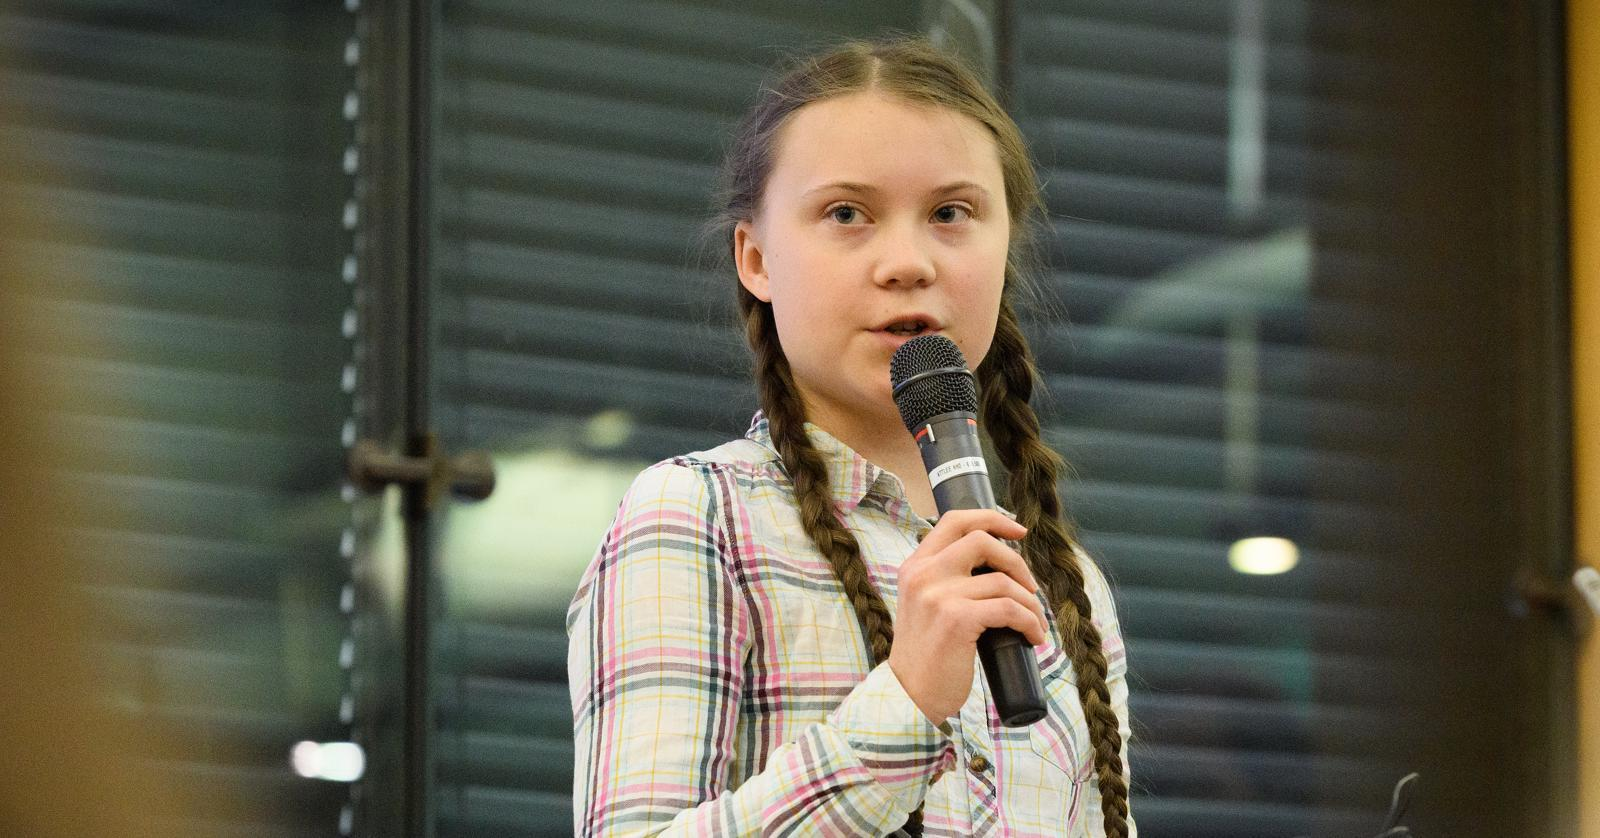 greta-thunberg-quotes-1556041001241.jpg